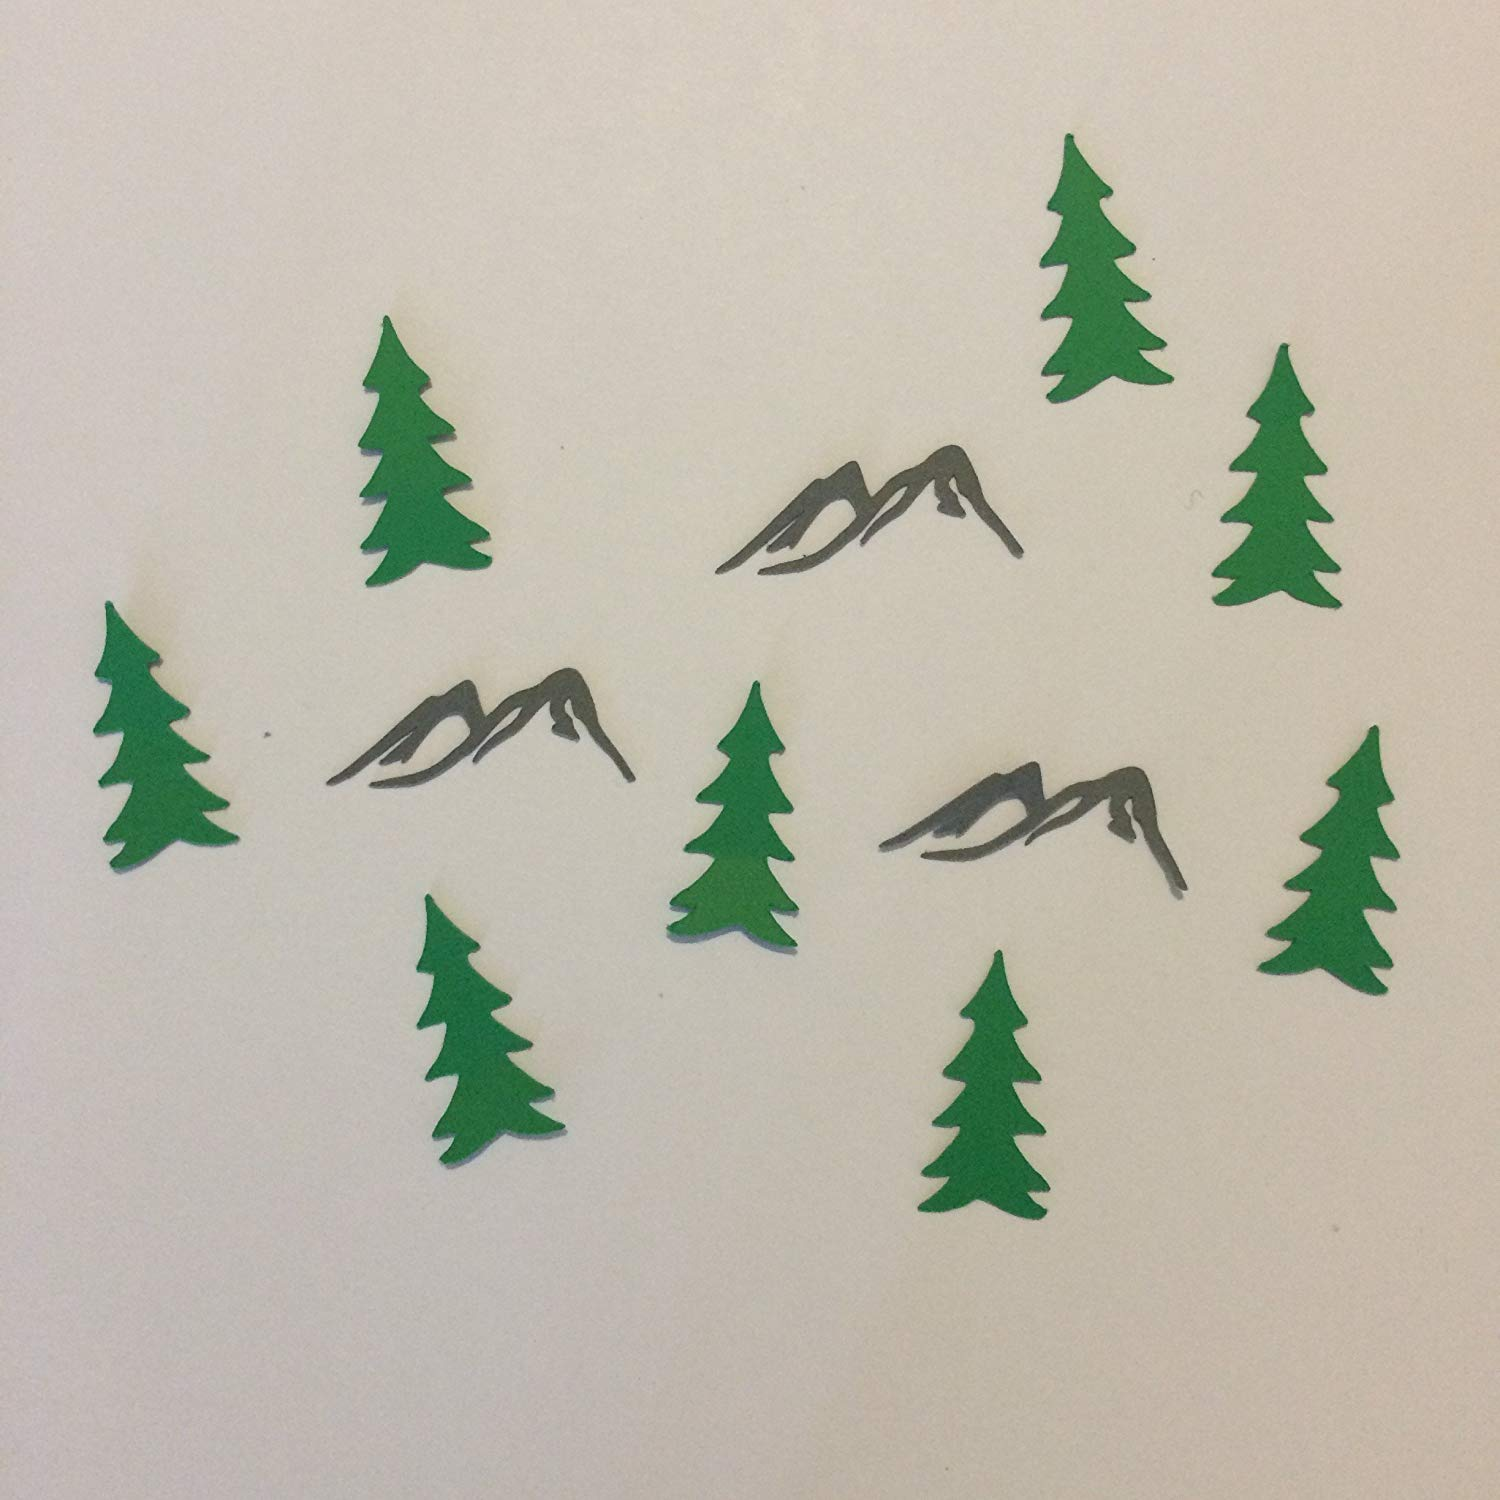 1in Confetti Set, Mountain Cut Outs, Tree Cut Outs, Woodland Theme, Hiking Theme, Mountain Decorations, Rustic Party Supplies, Baby Shower Decorations, Table Scatter, Party Supplies, Confetti